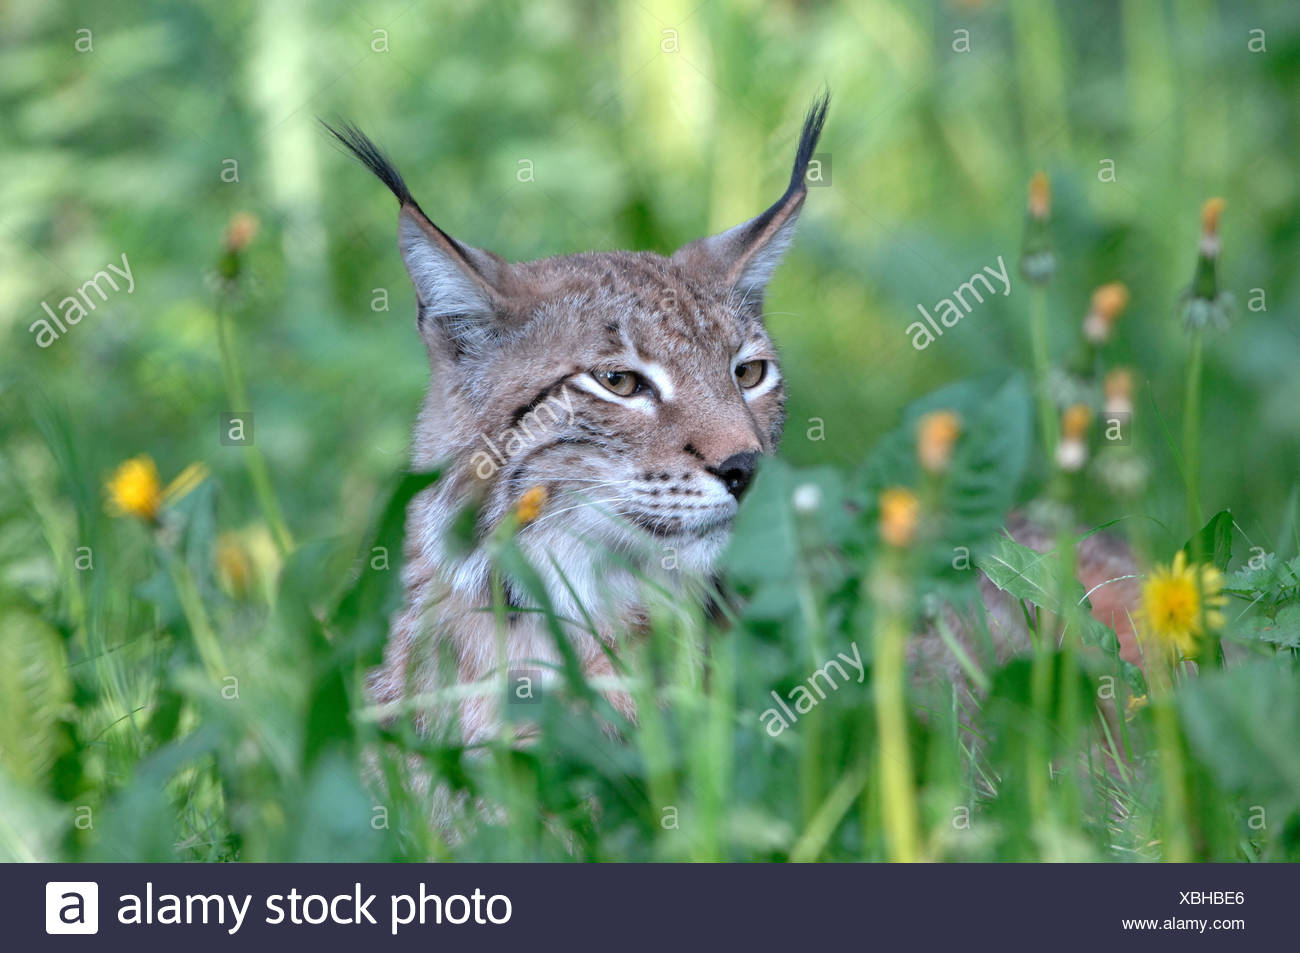 Lynx, cat, big cat, predator, cats, wildcat, big cats, lynxes, fur animals, ambusher, grass, animal, animals, Germany, Europe, - Stock Image